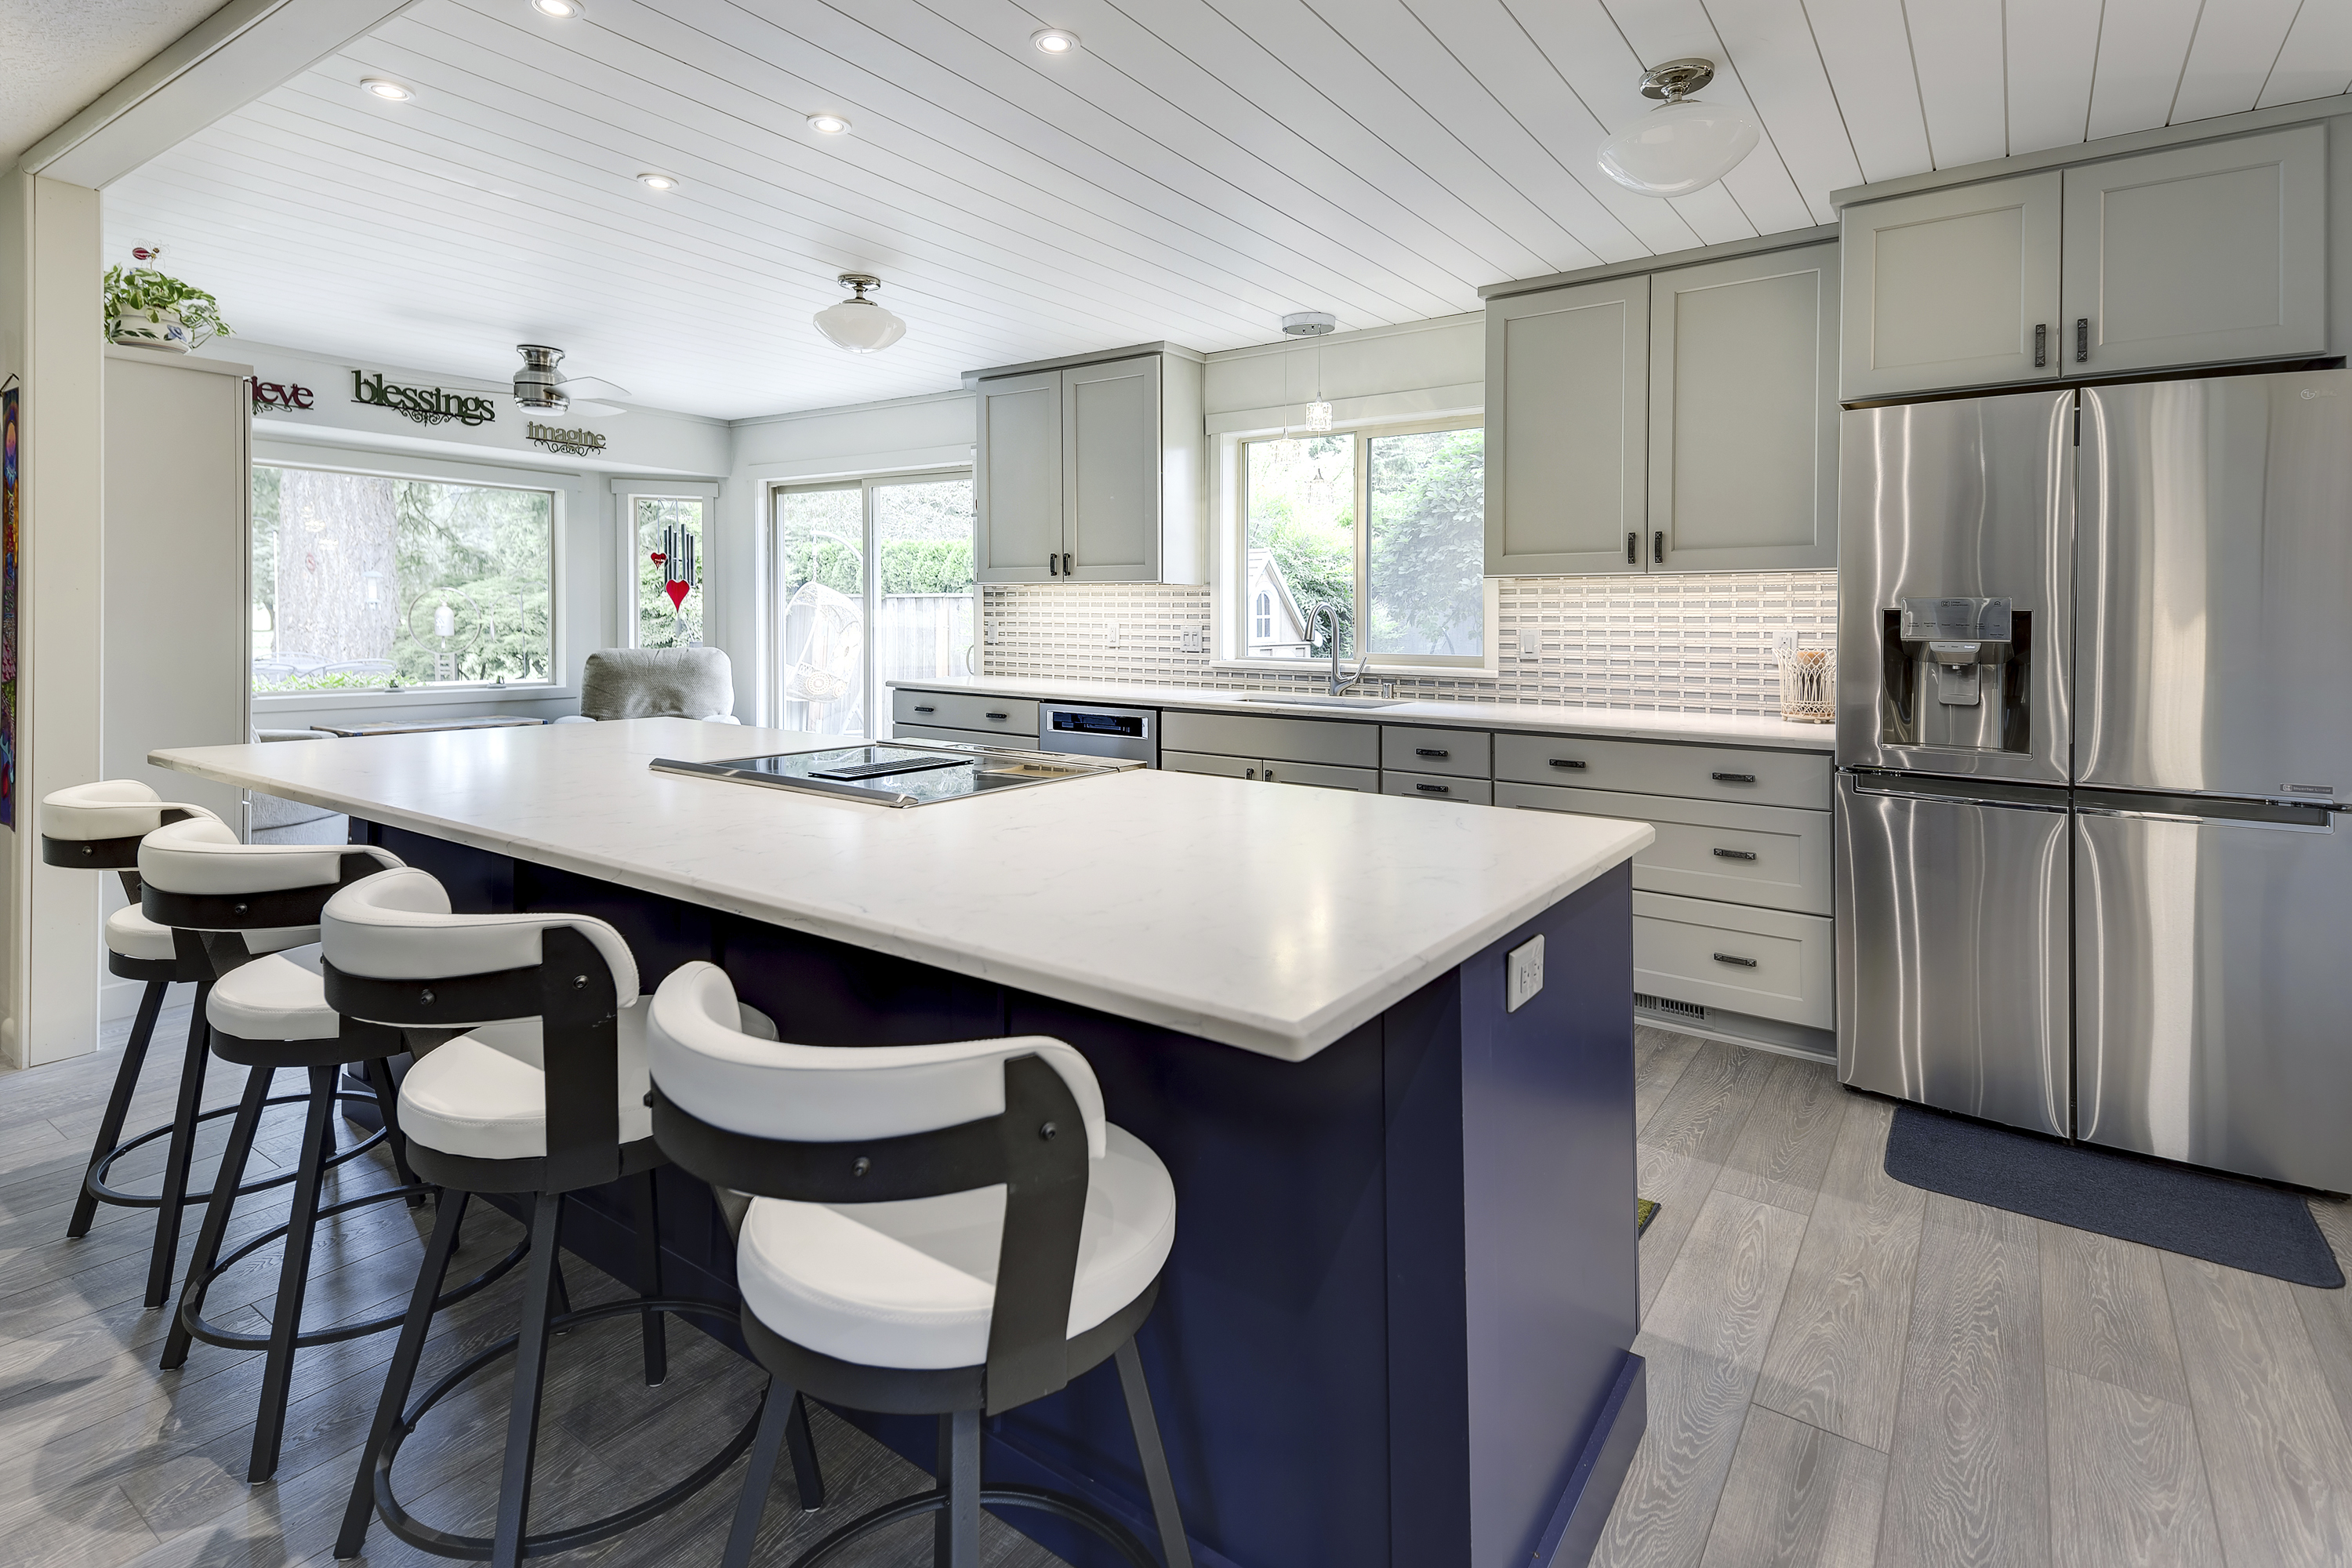 Ash Greige and Indigo Blue Beachy Kitchen Cabinets